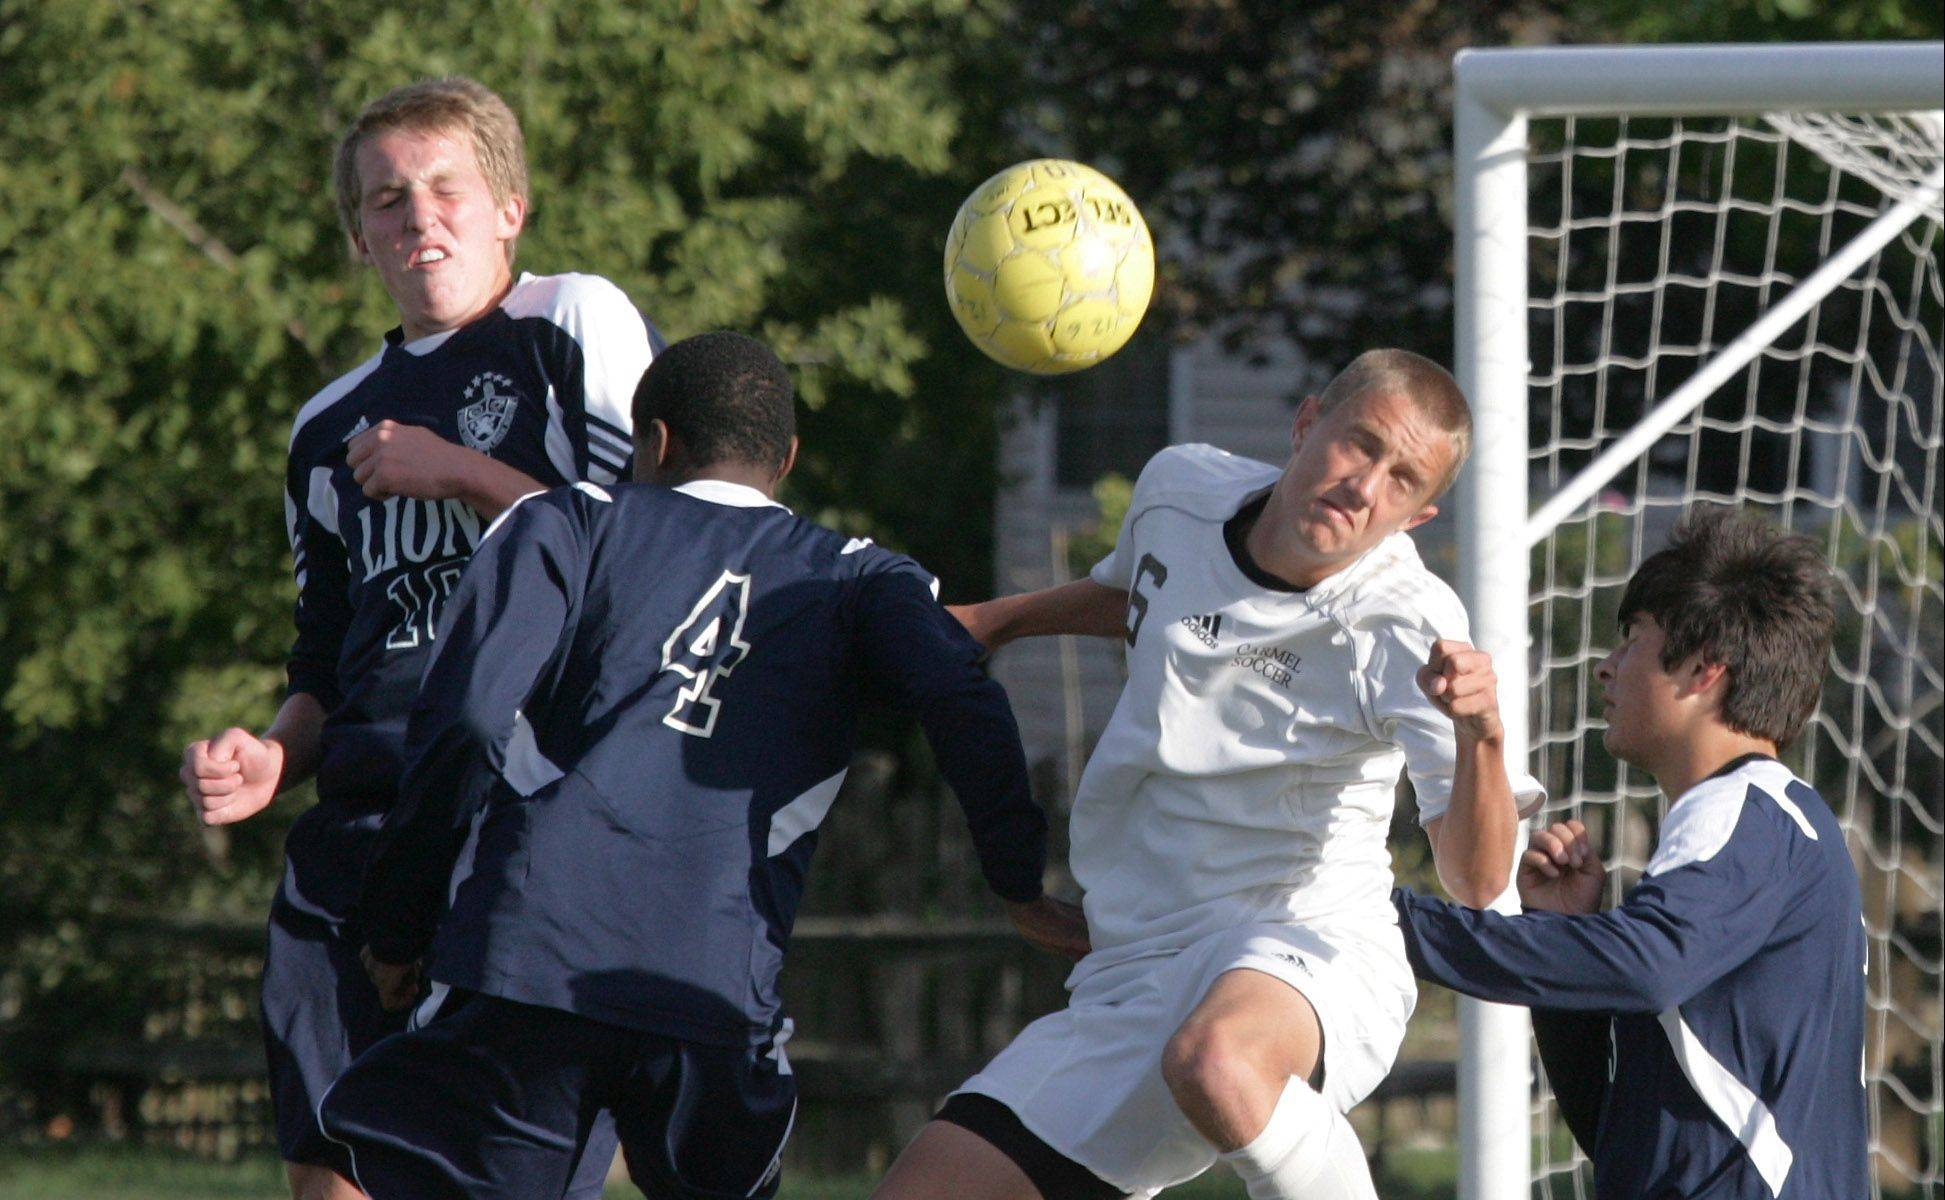 From left, St. Viator's Michel Duszynski and Spencer Moore, Carmel's Evan Potter and St. Viator's Michael Scheer rise up for a header Tuesday in Mundelein.